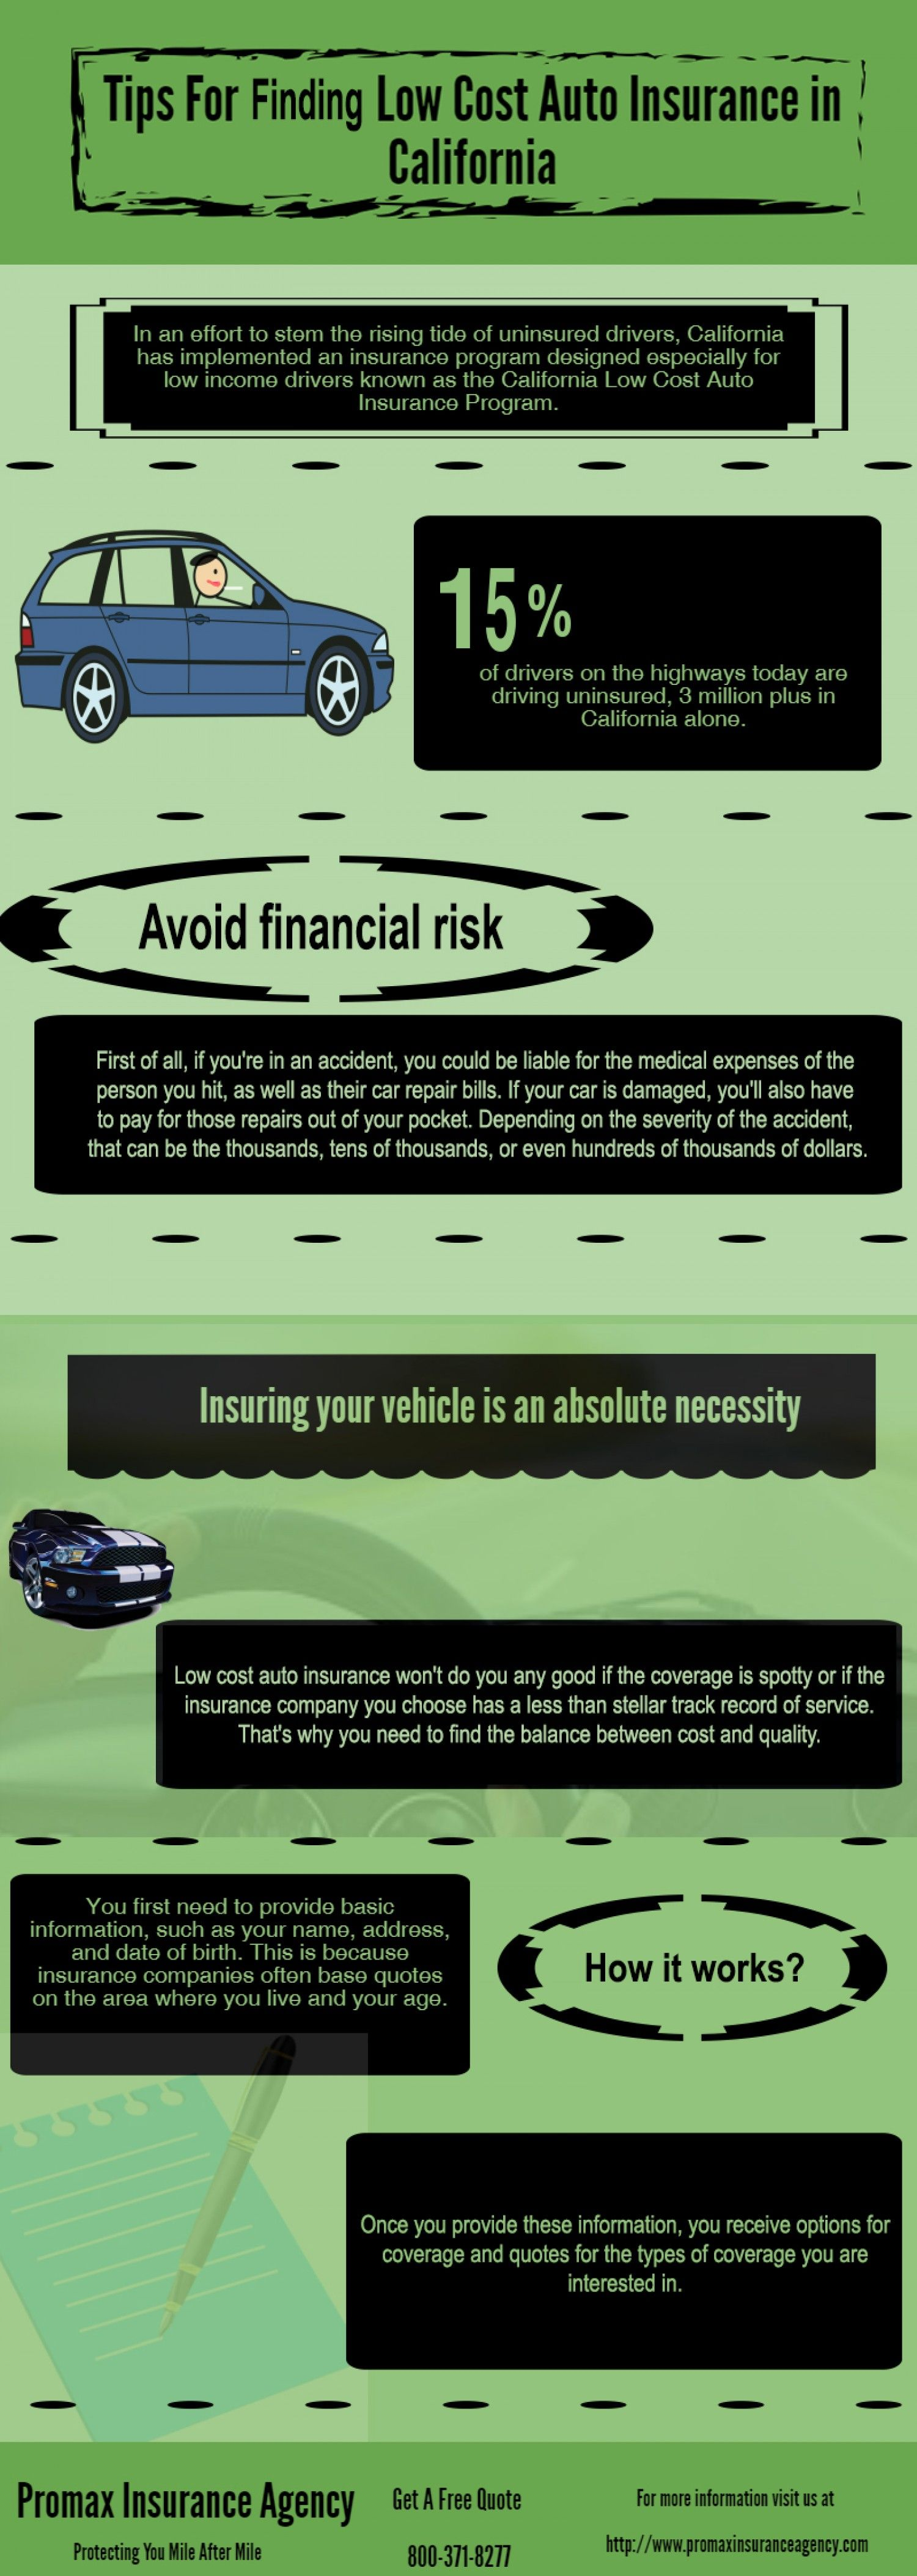 The General Car Insurance Quotes Awesome Low Cost Auto Insurance In California Infographic . Inspiration